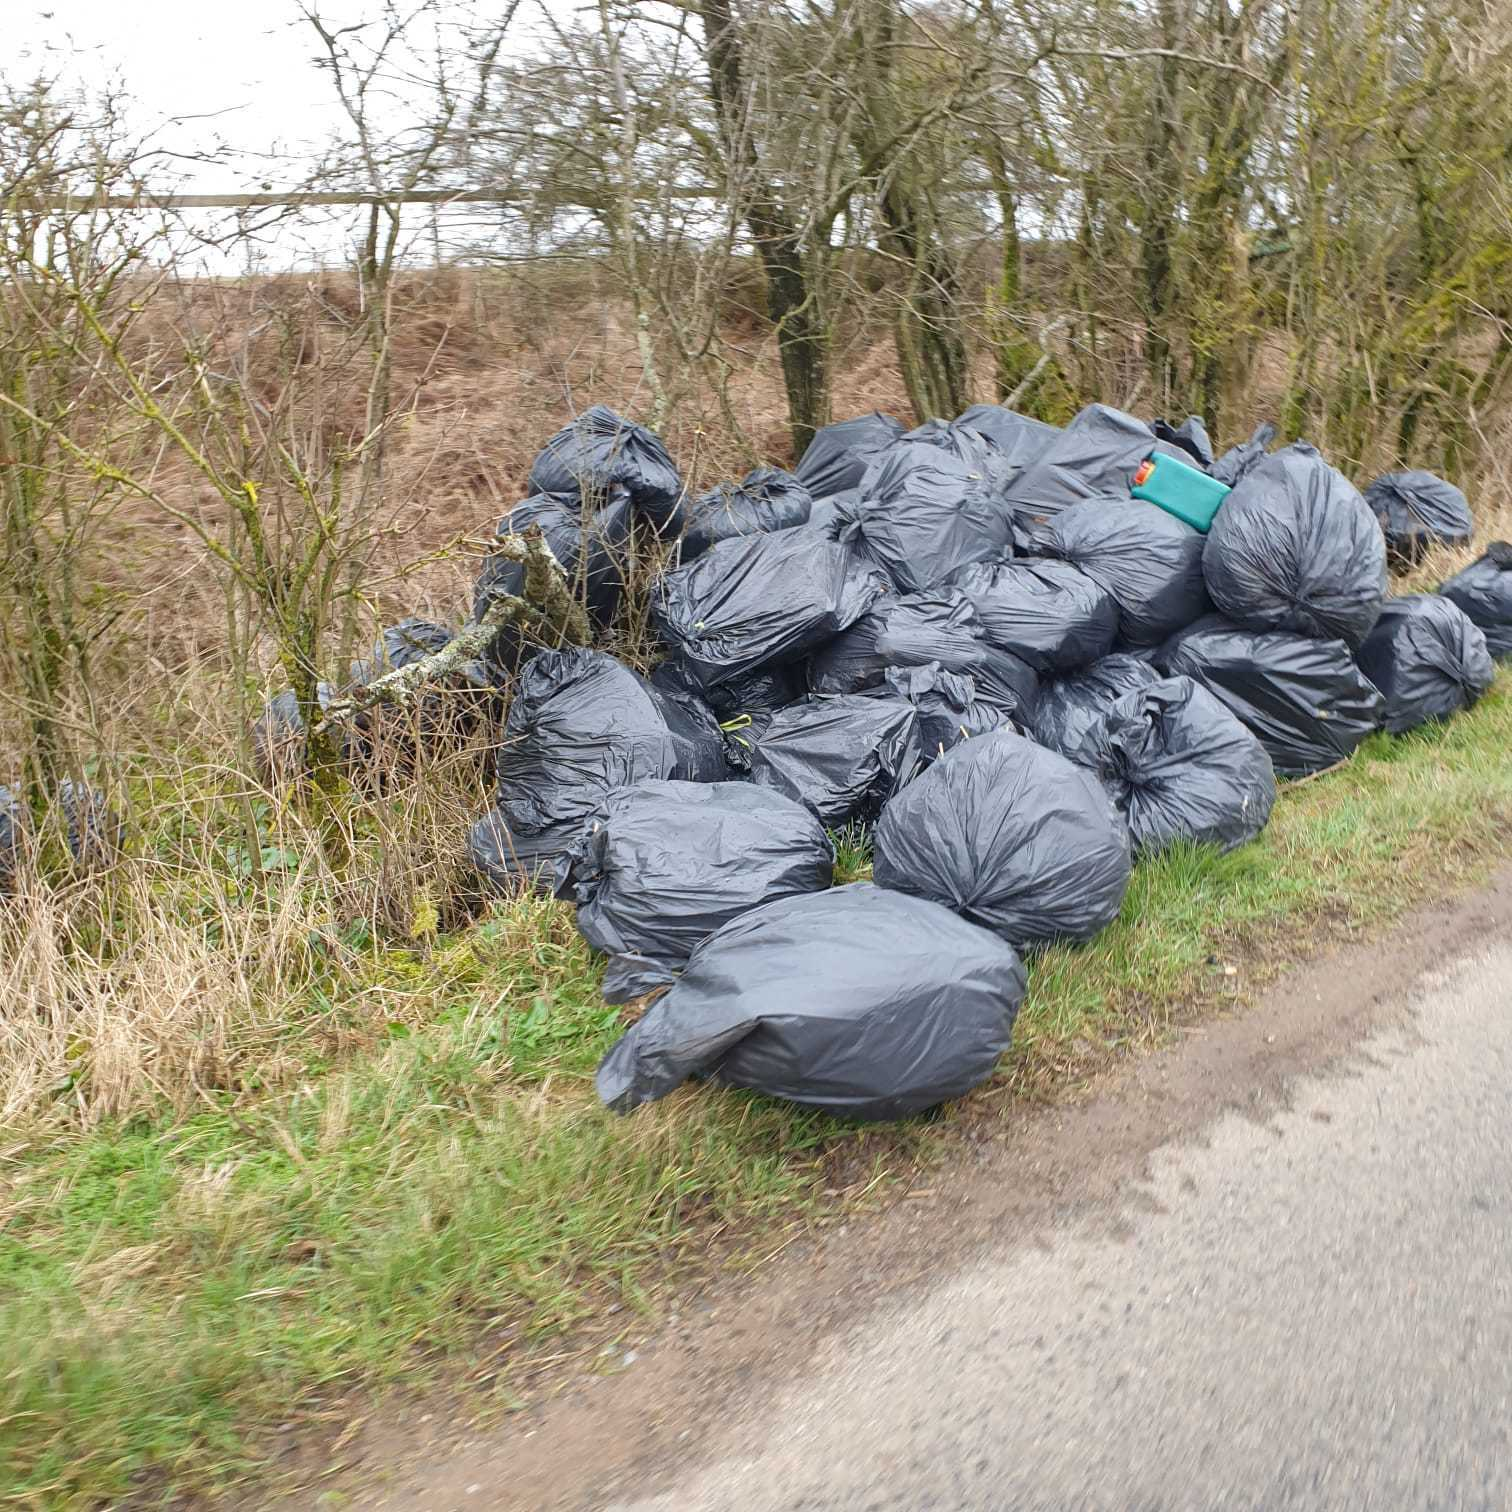 Around 50 bags were left at the side of the road in Brill